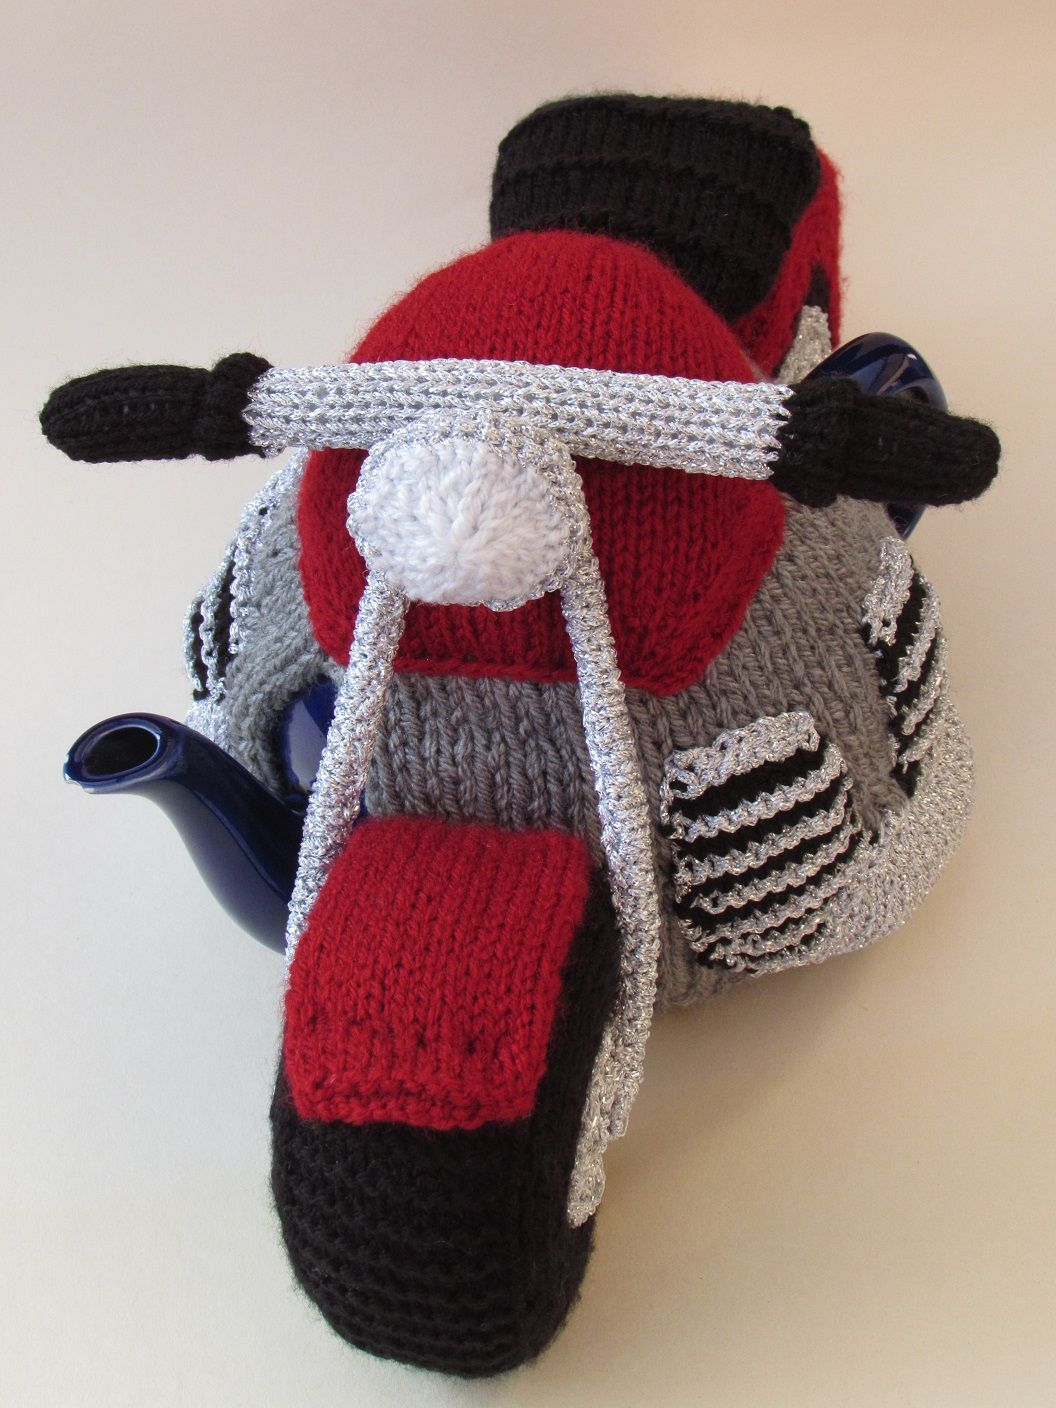 Motorcycle tea cosy knitting pattern   Tea cosies, Cosy and Teas